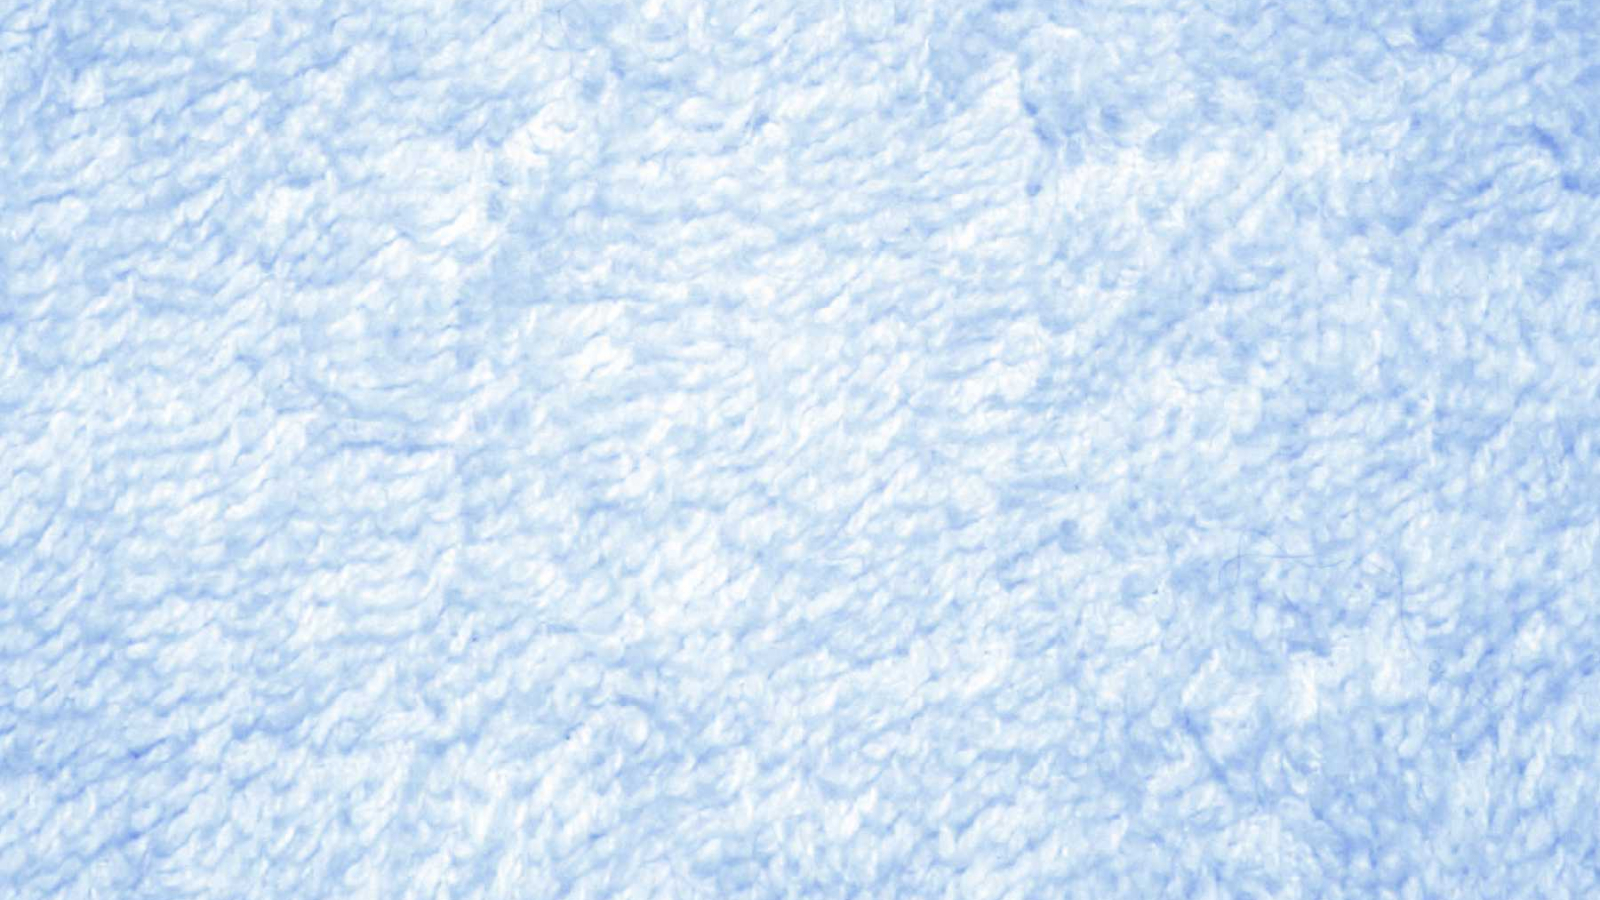 Free Download Baby Blue Terry Cloth Towel Background Image